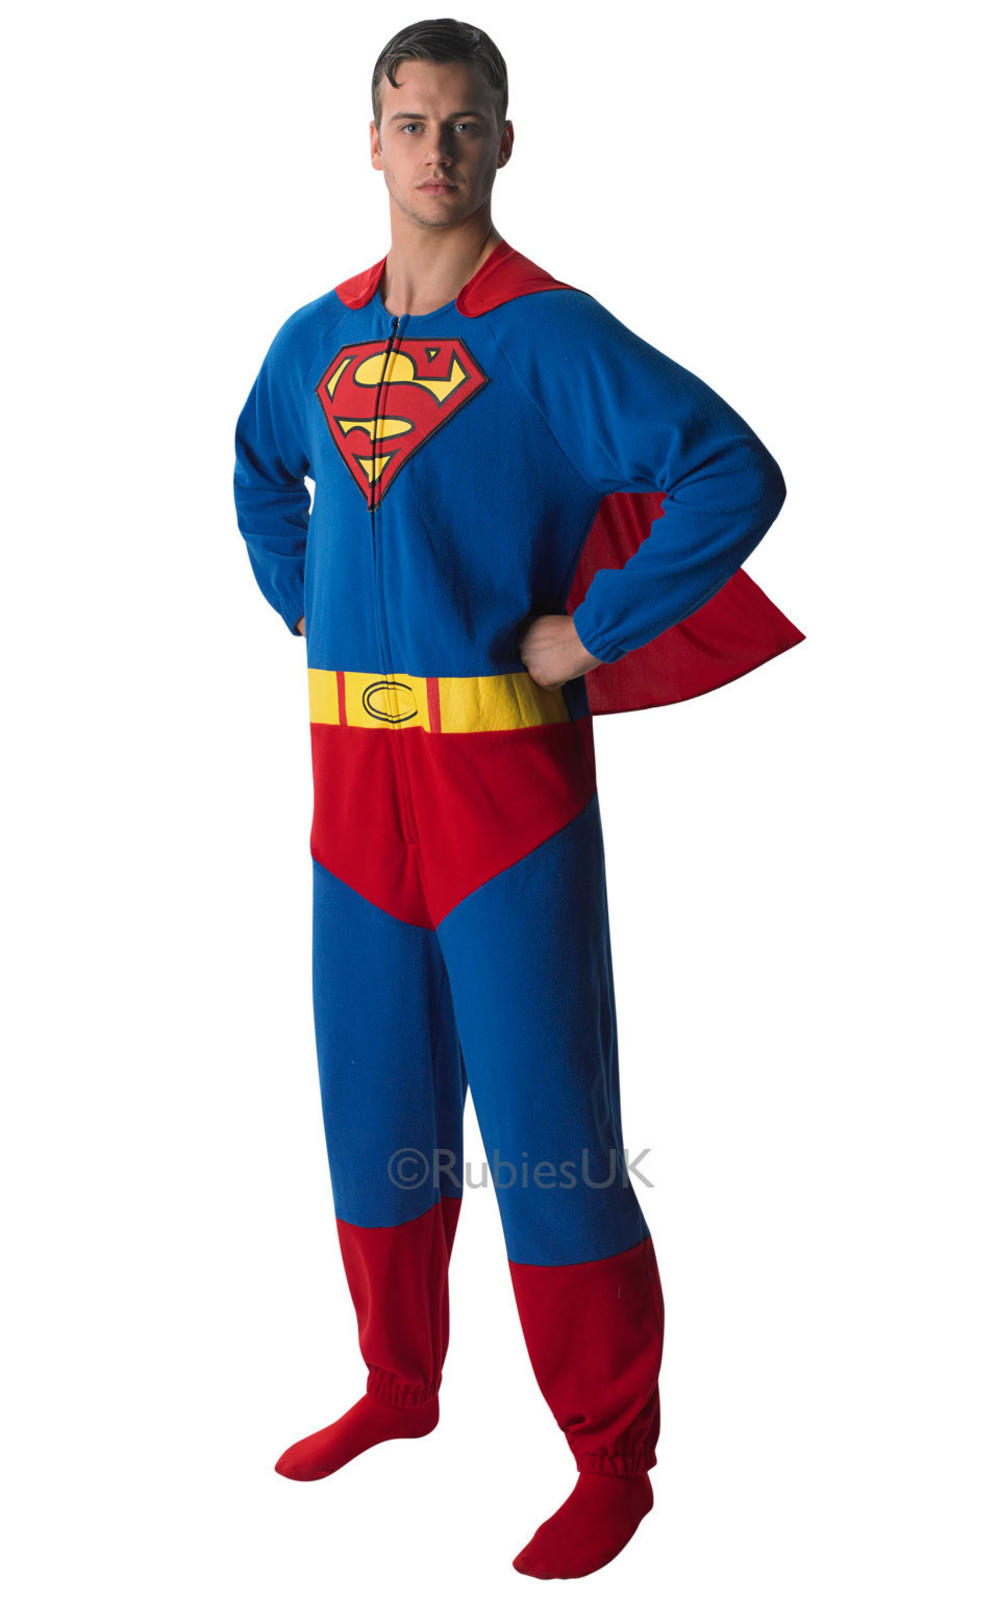 Adult's Superman Onesie